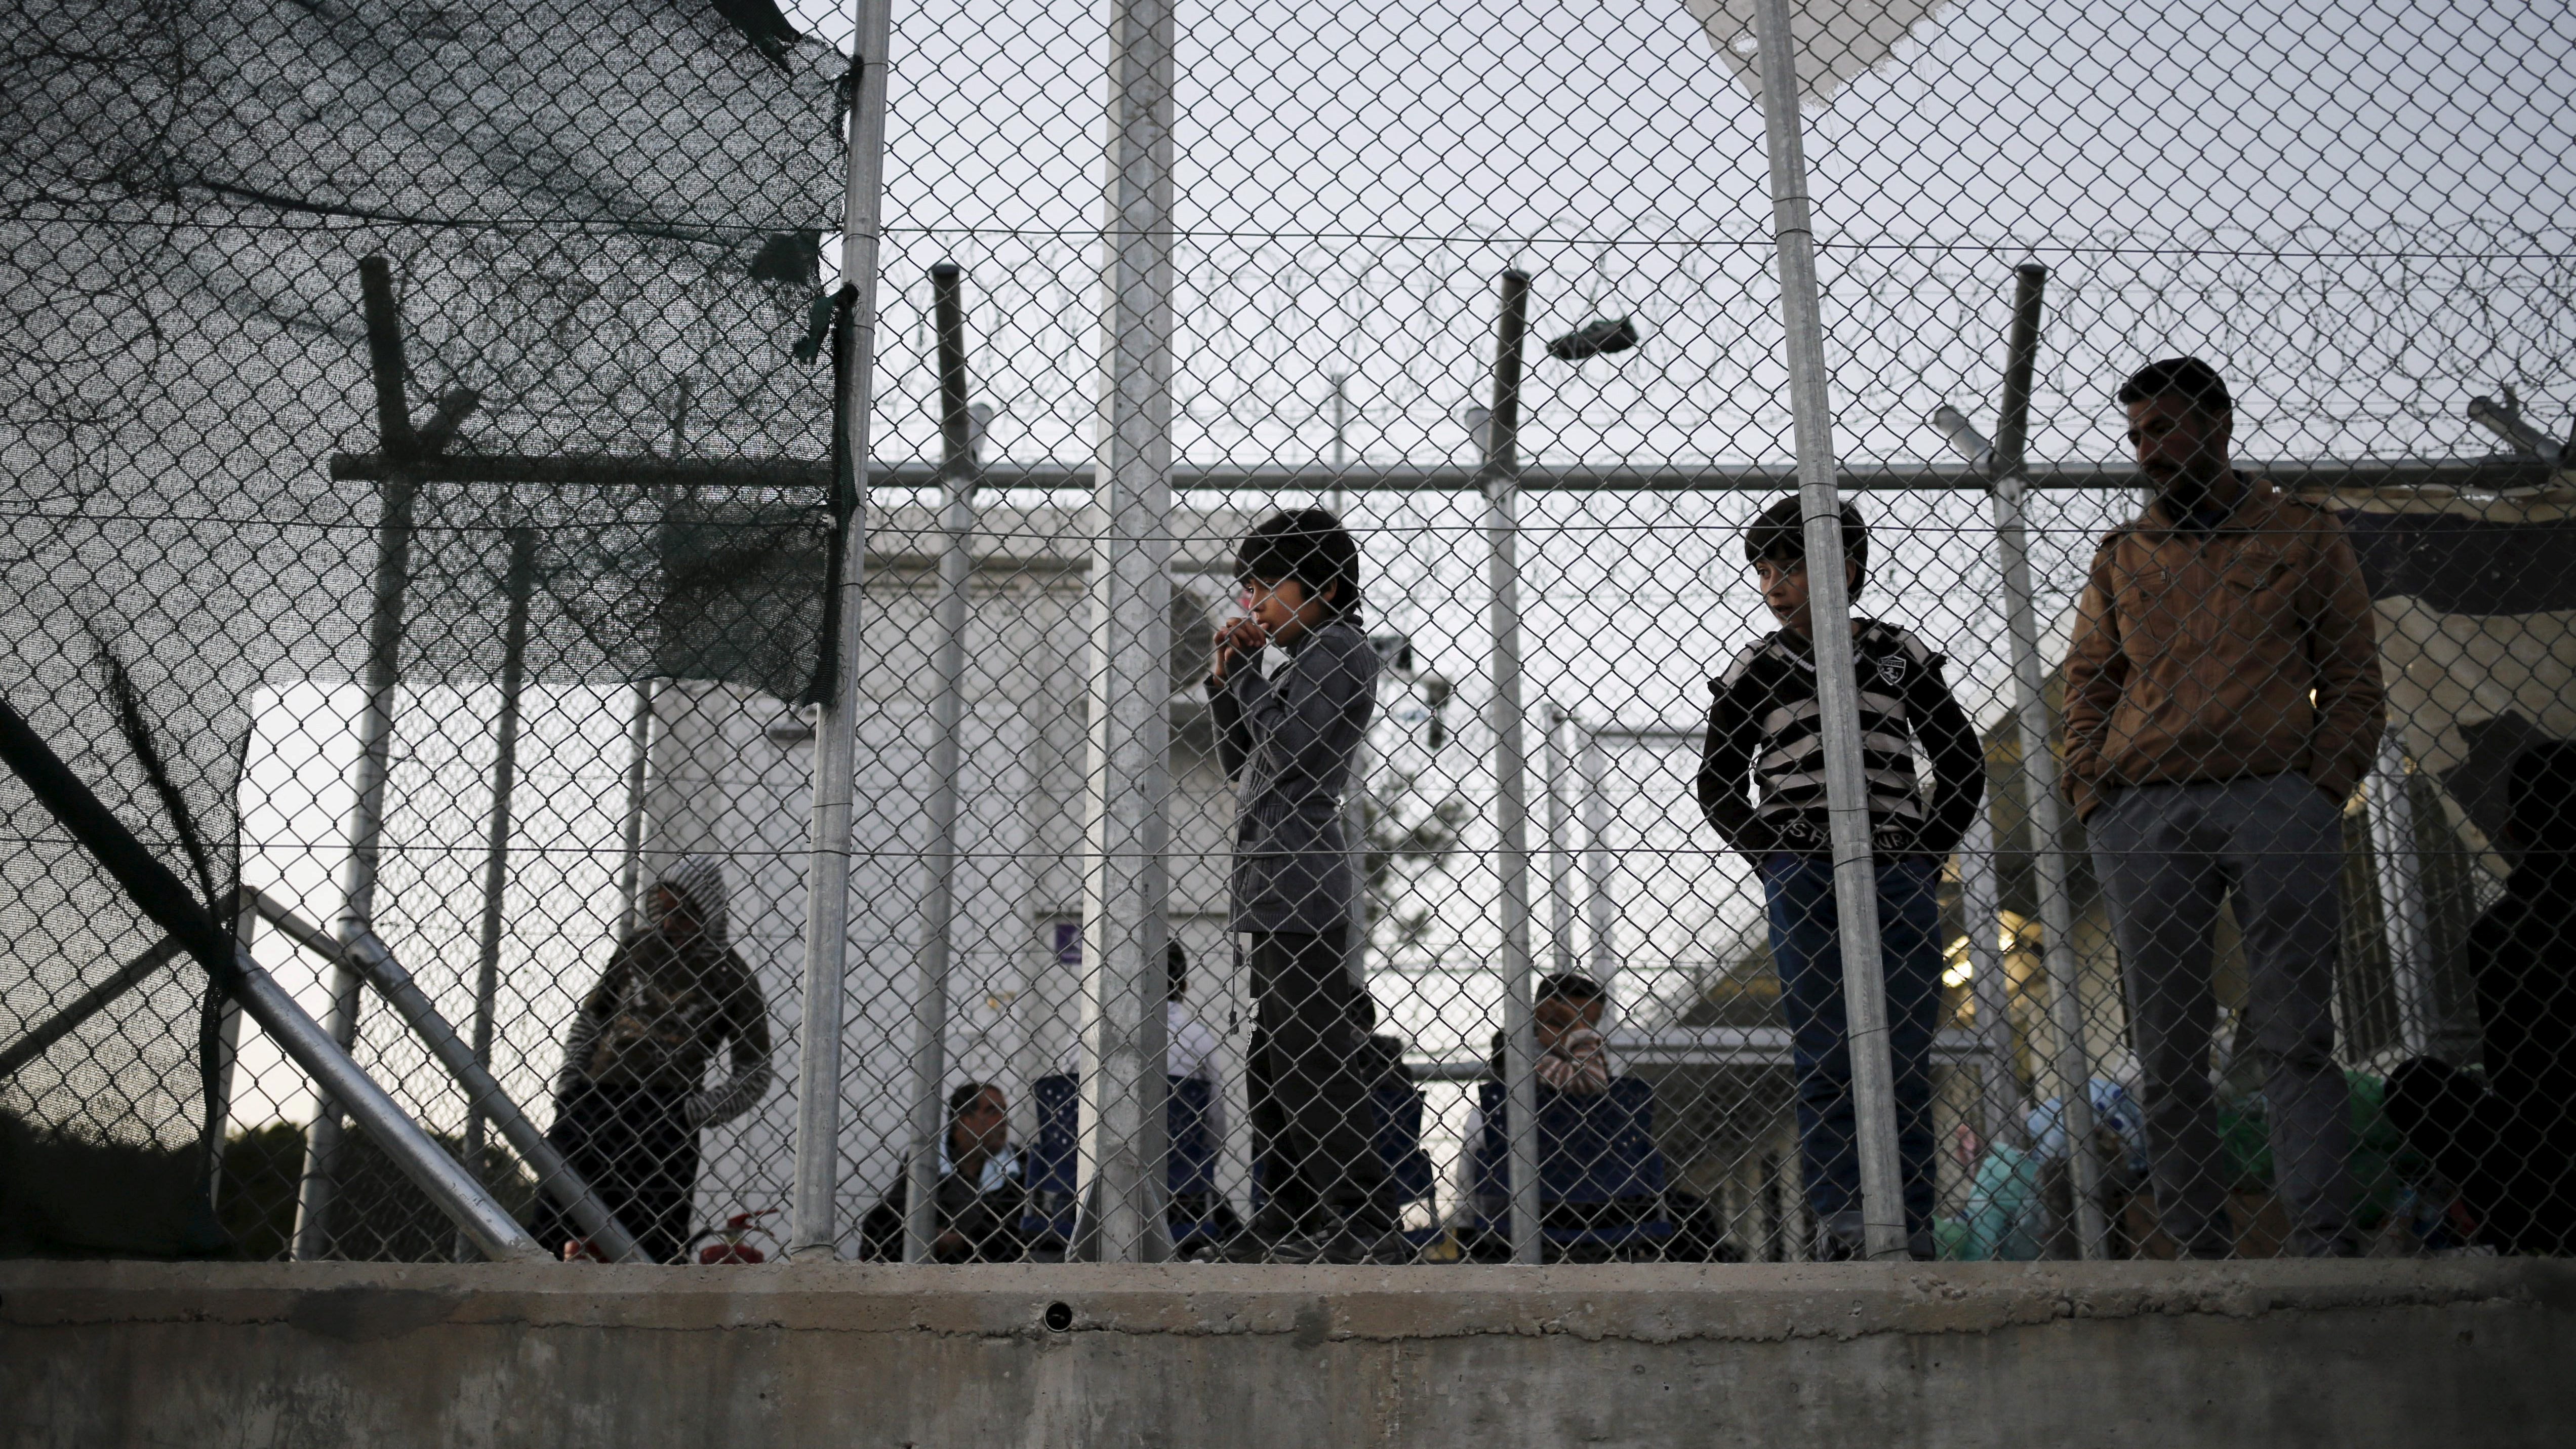 A migrant child stands next to a metal fence at the Moria refugee camp on the Greek island of Lesbos, November 5, 2015.